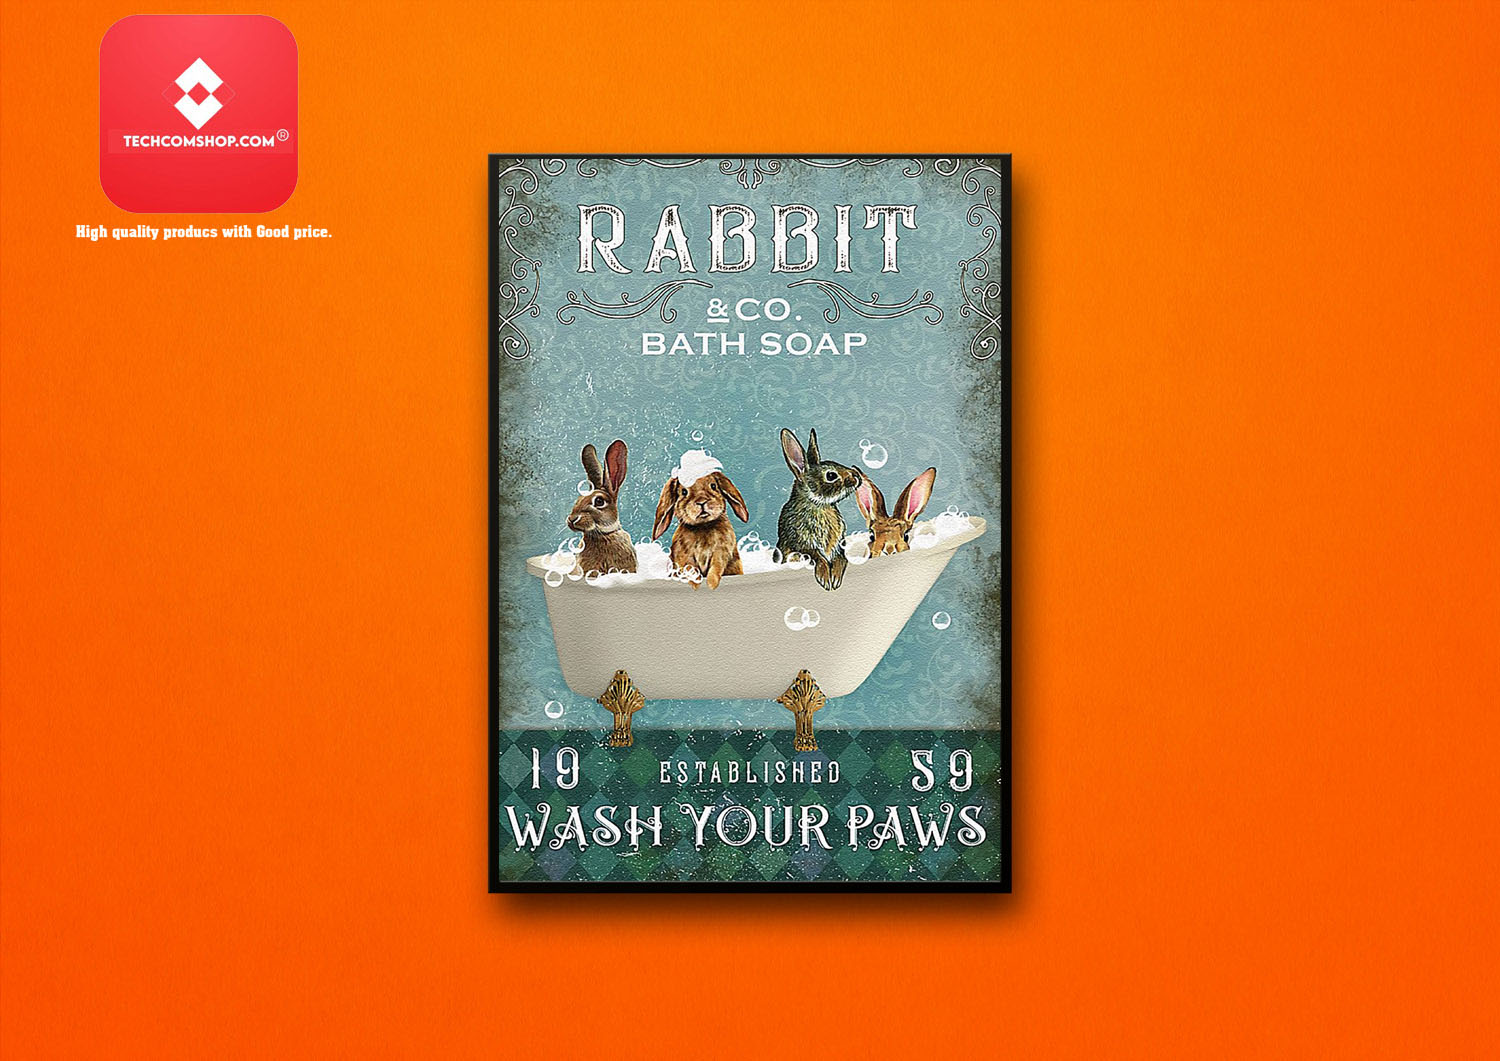 Rabbit and co bath soap 19 established s9 wash your paws poster 7